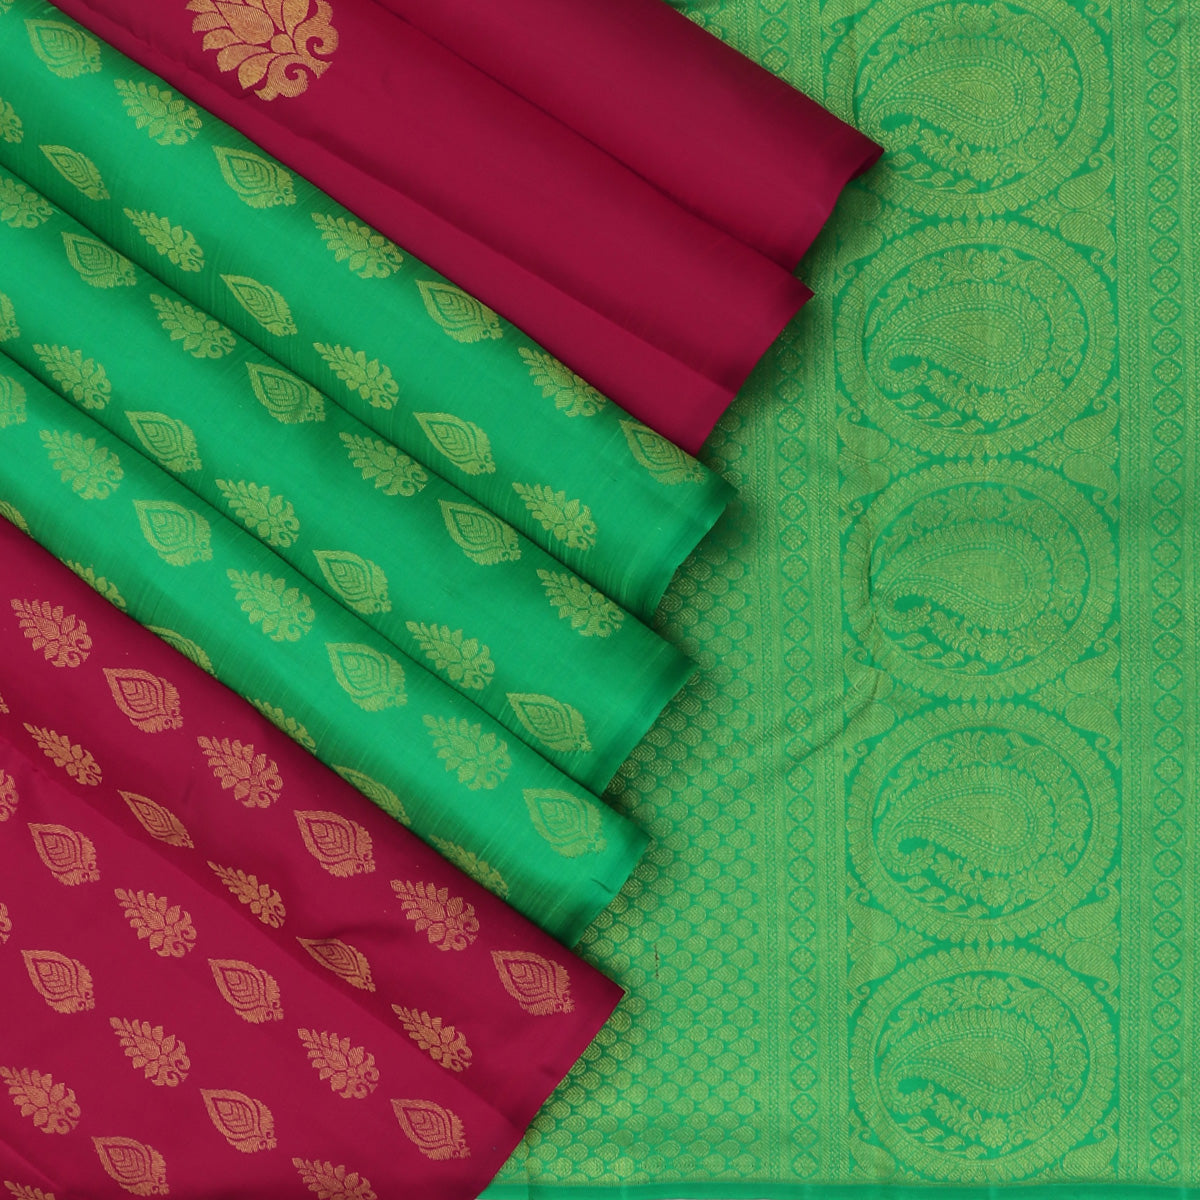 kanjivaram Silk Saree Ruby Color with buttas and Parrot Green with Partly Pallu and Zari Border